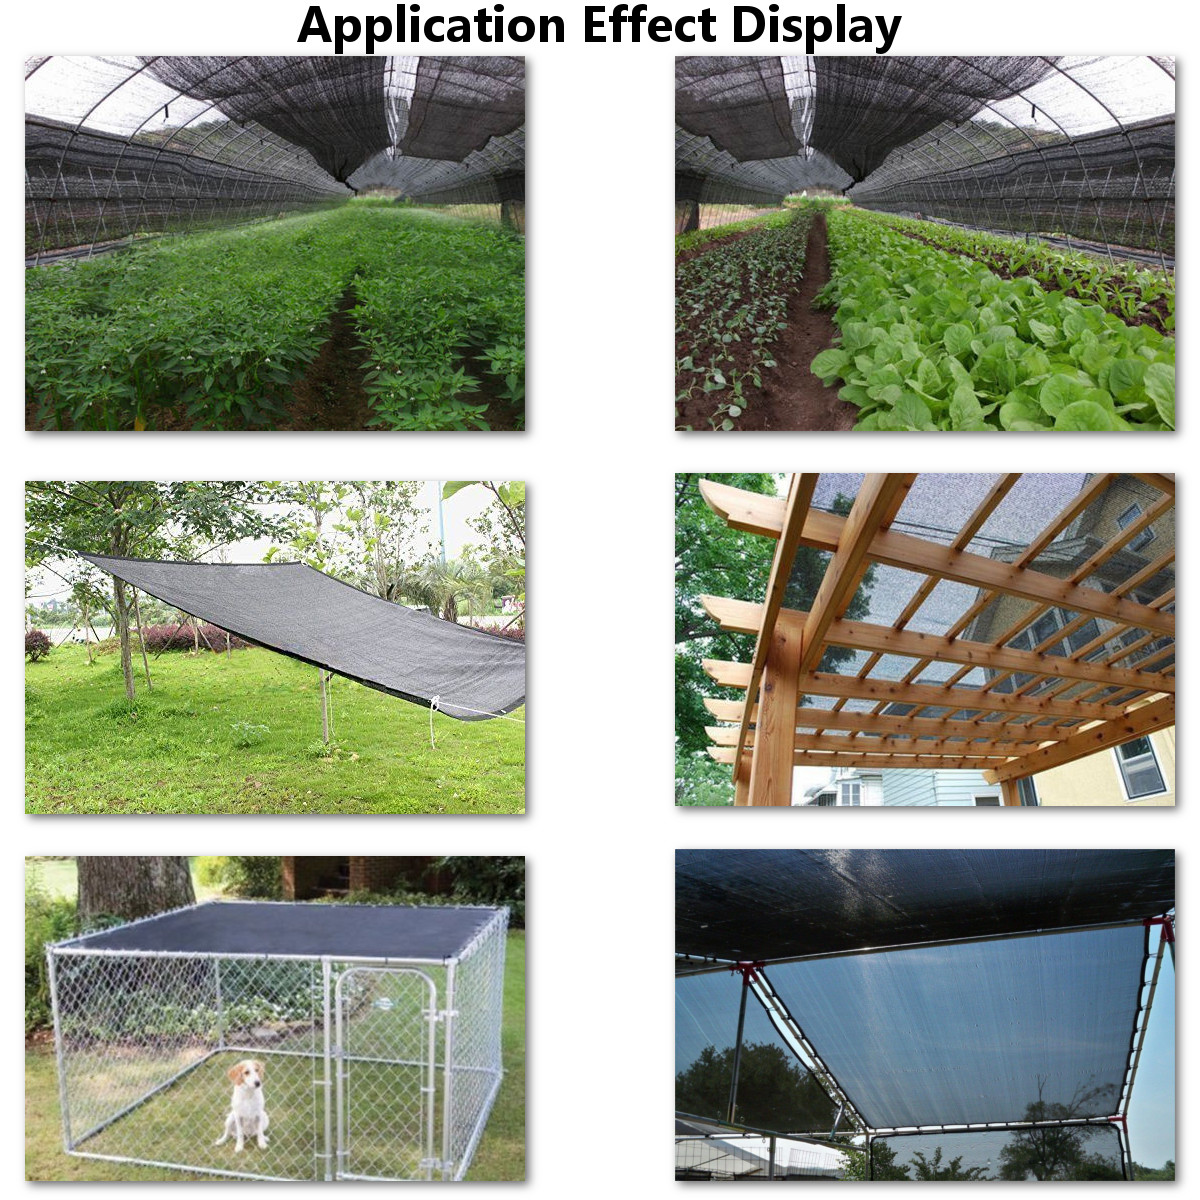 4x5m 40% Sunblock Sun Shade Cloth for Plant Cover Greenhouse Barn Parking Lot